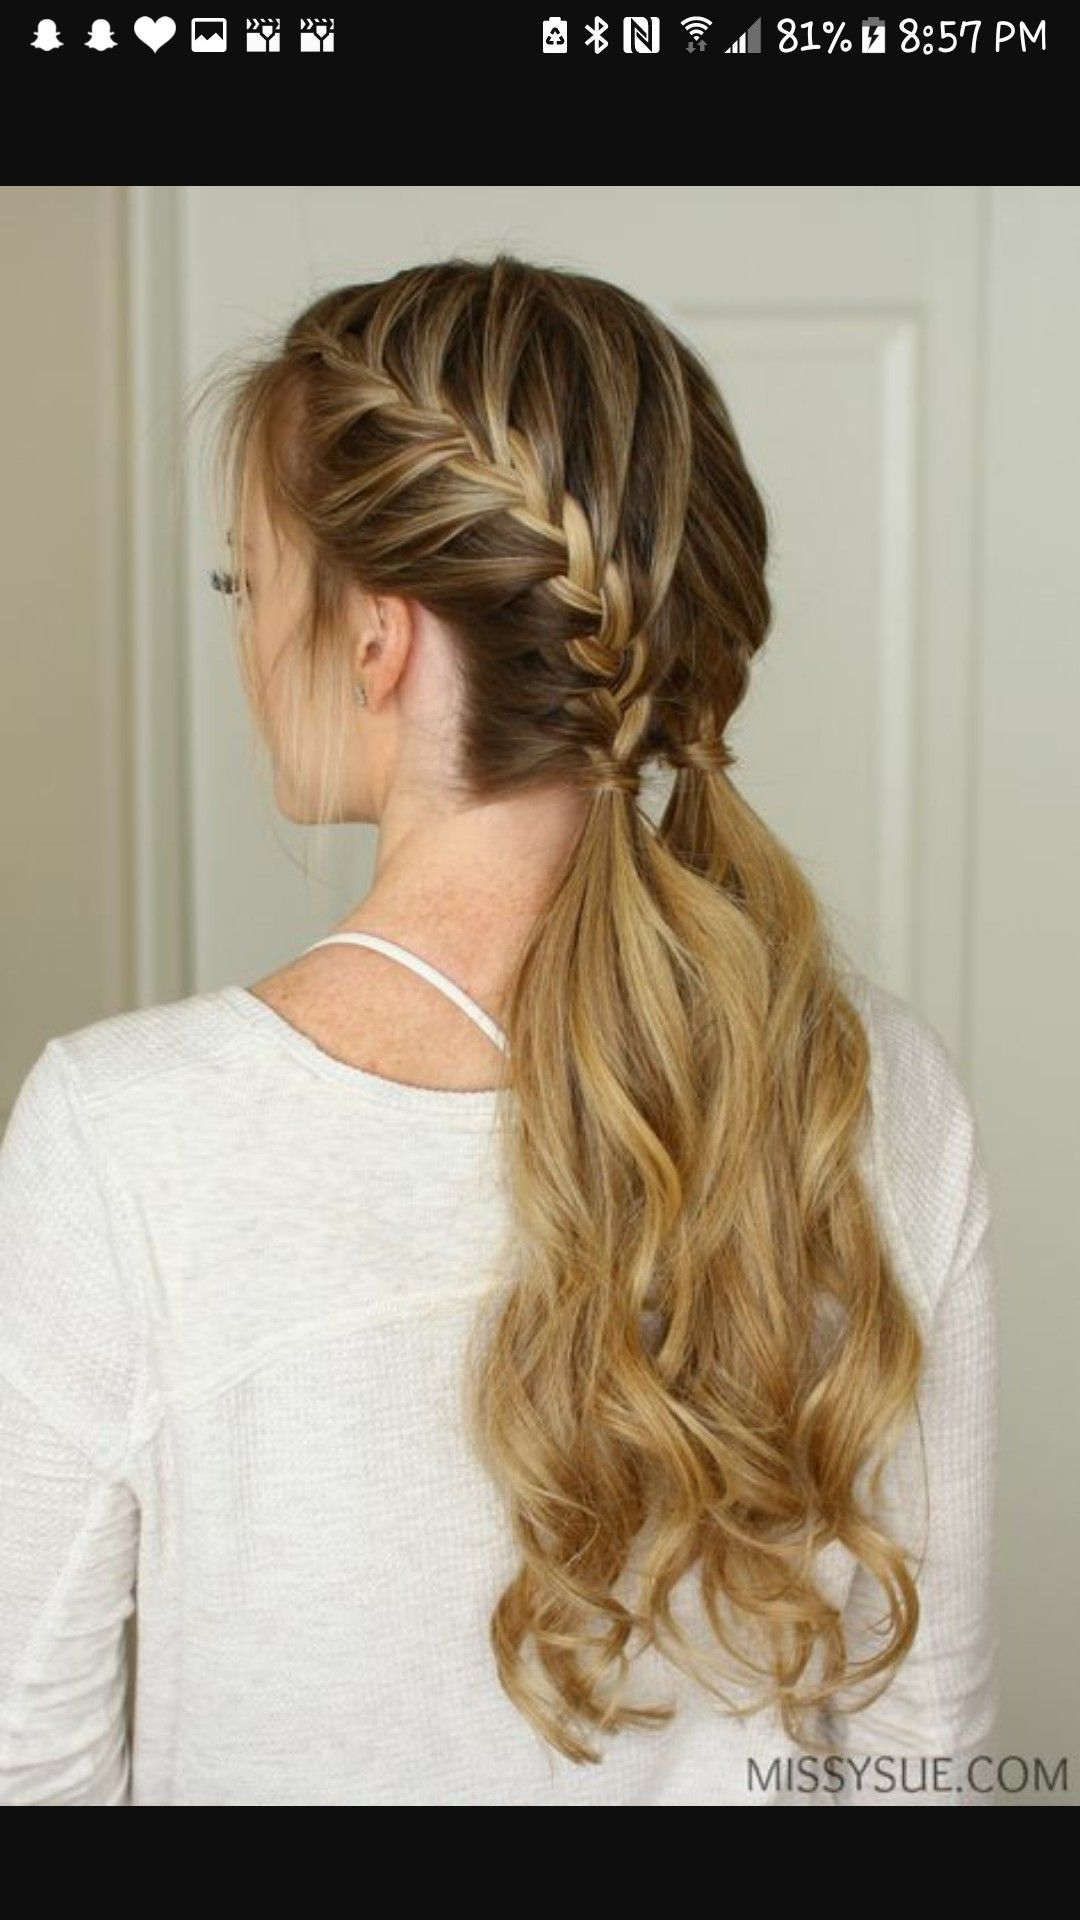 Pin by dawn ehlers on hair pinterest hair style makeup and hair